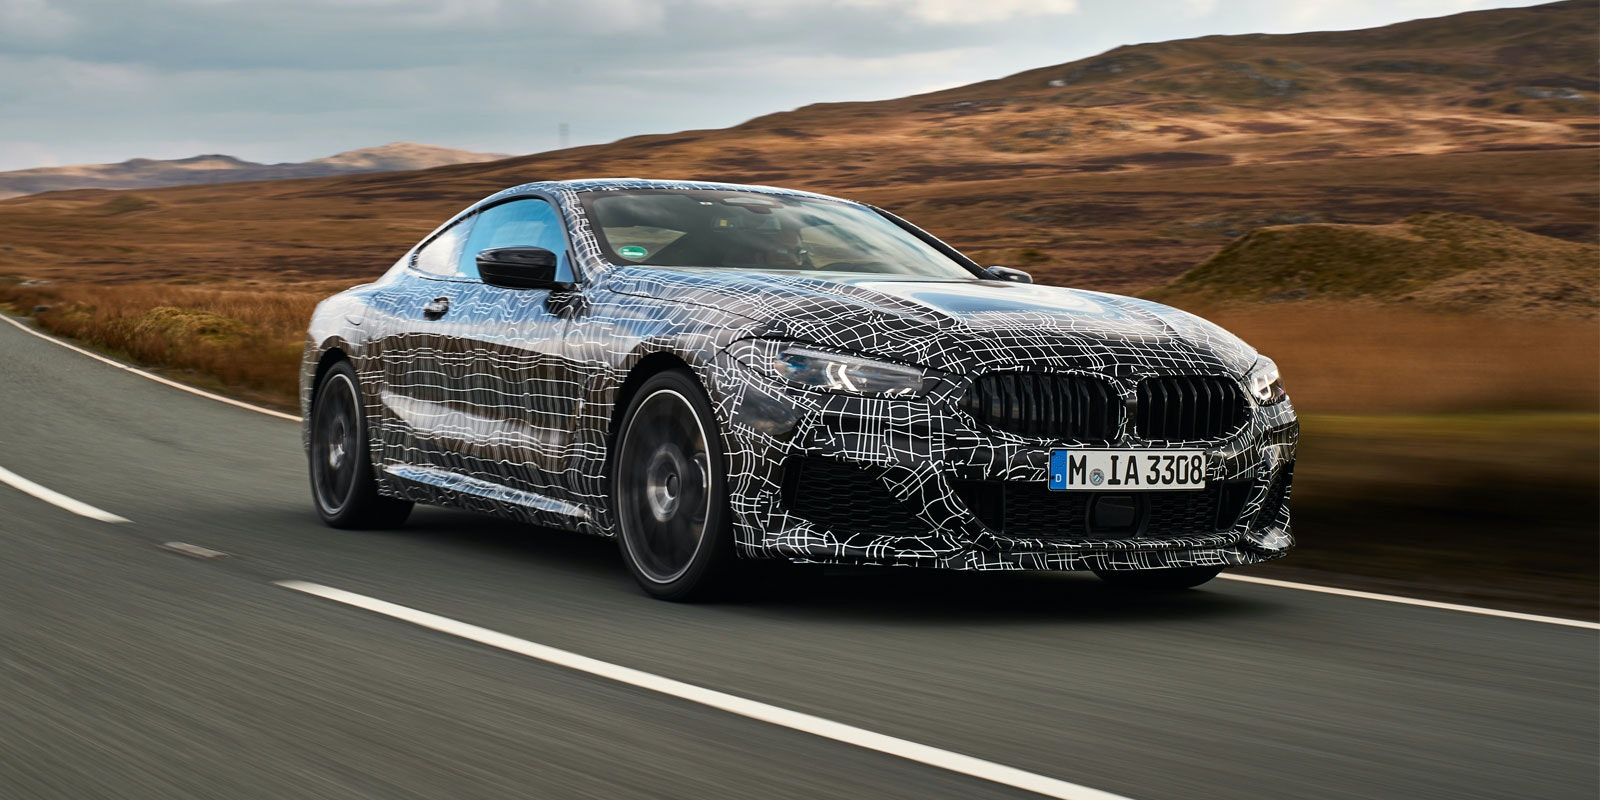 Bmw 8 series prototype front driving lead 1.jpg?ixlib=rb 1.1